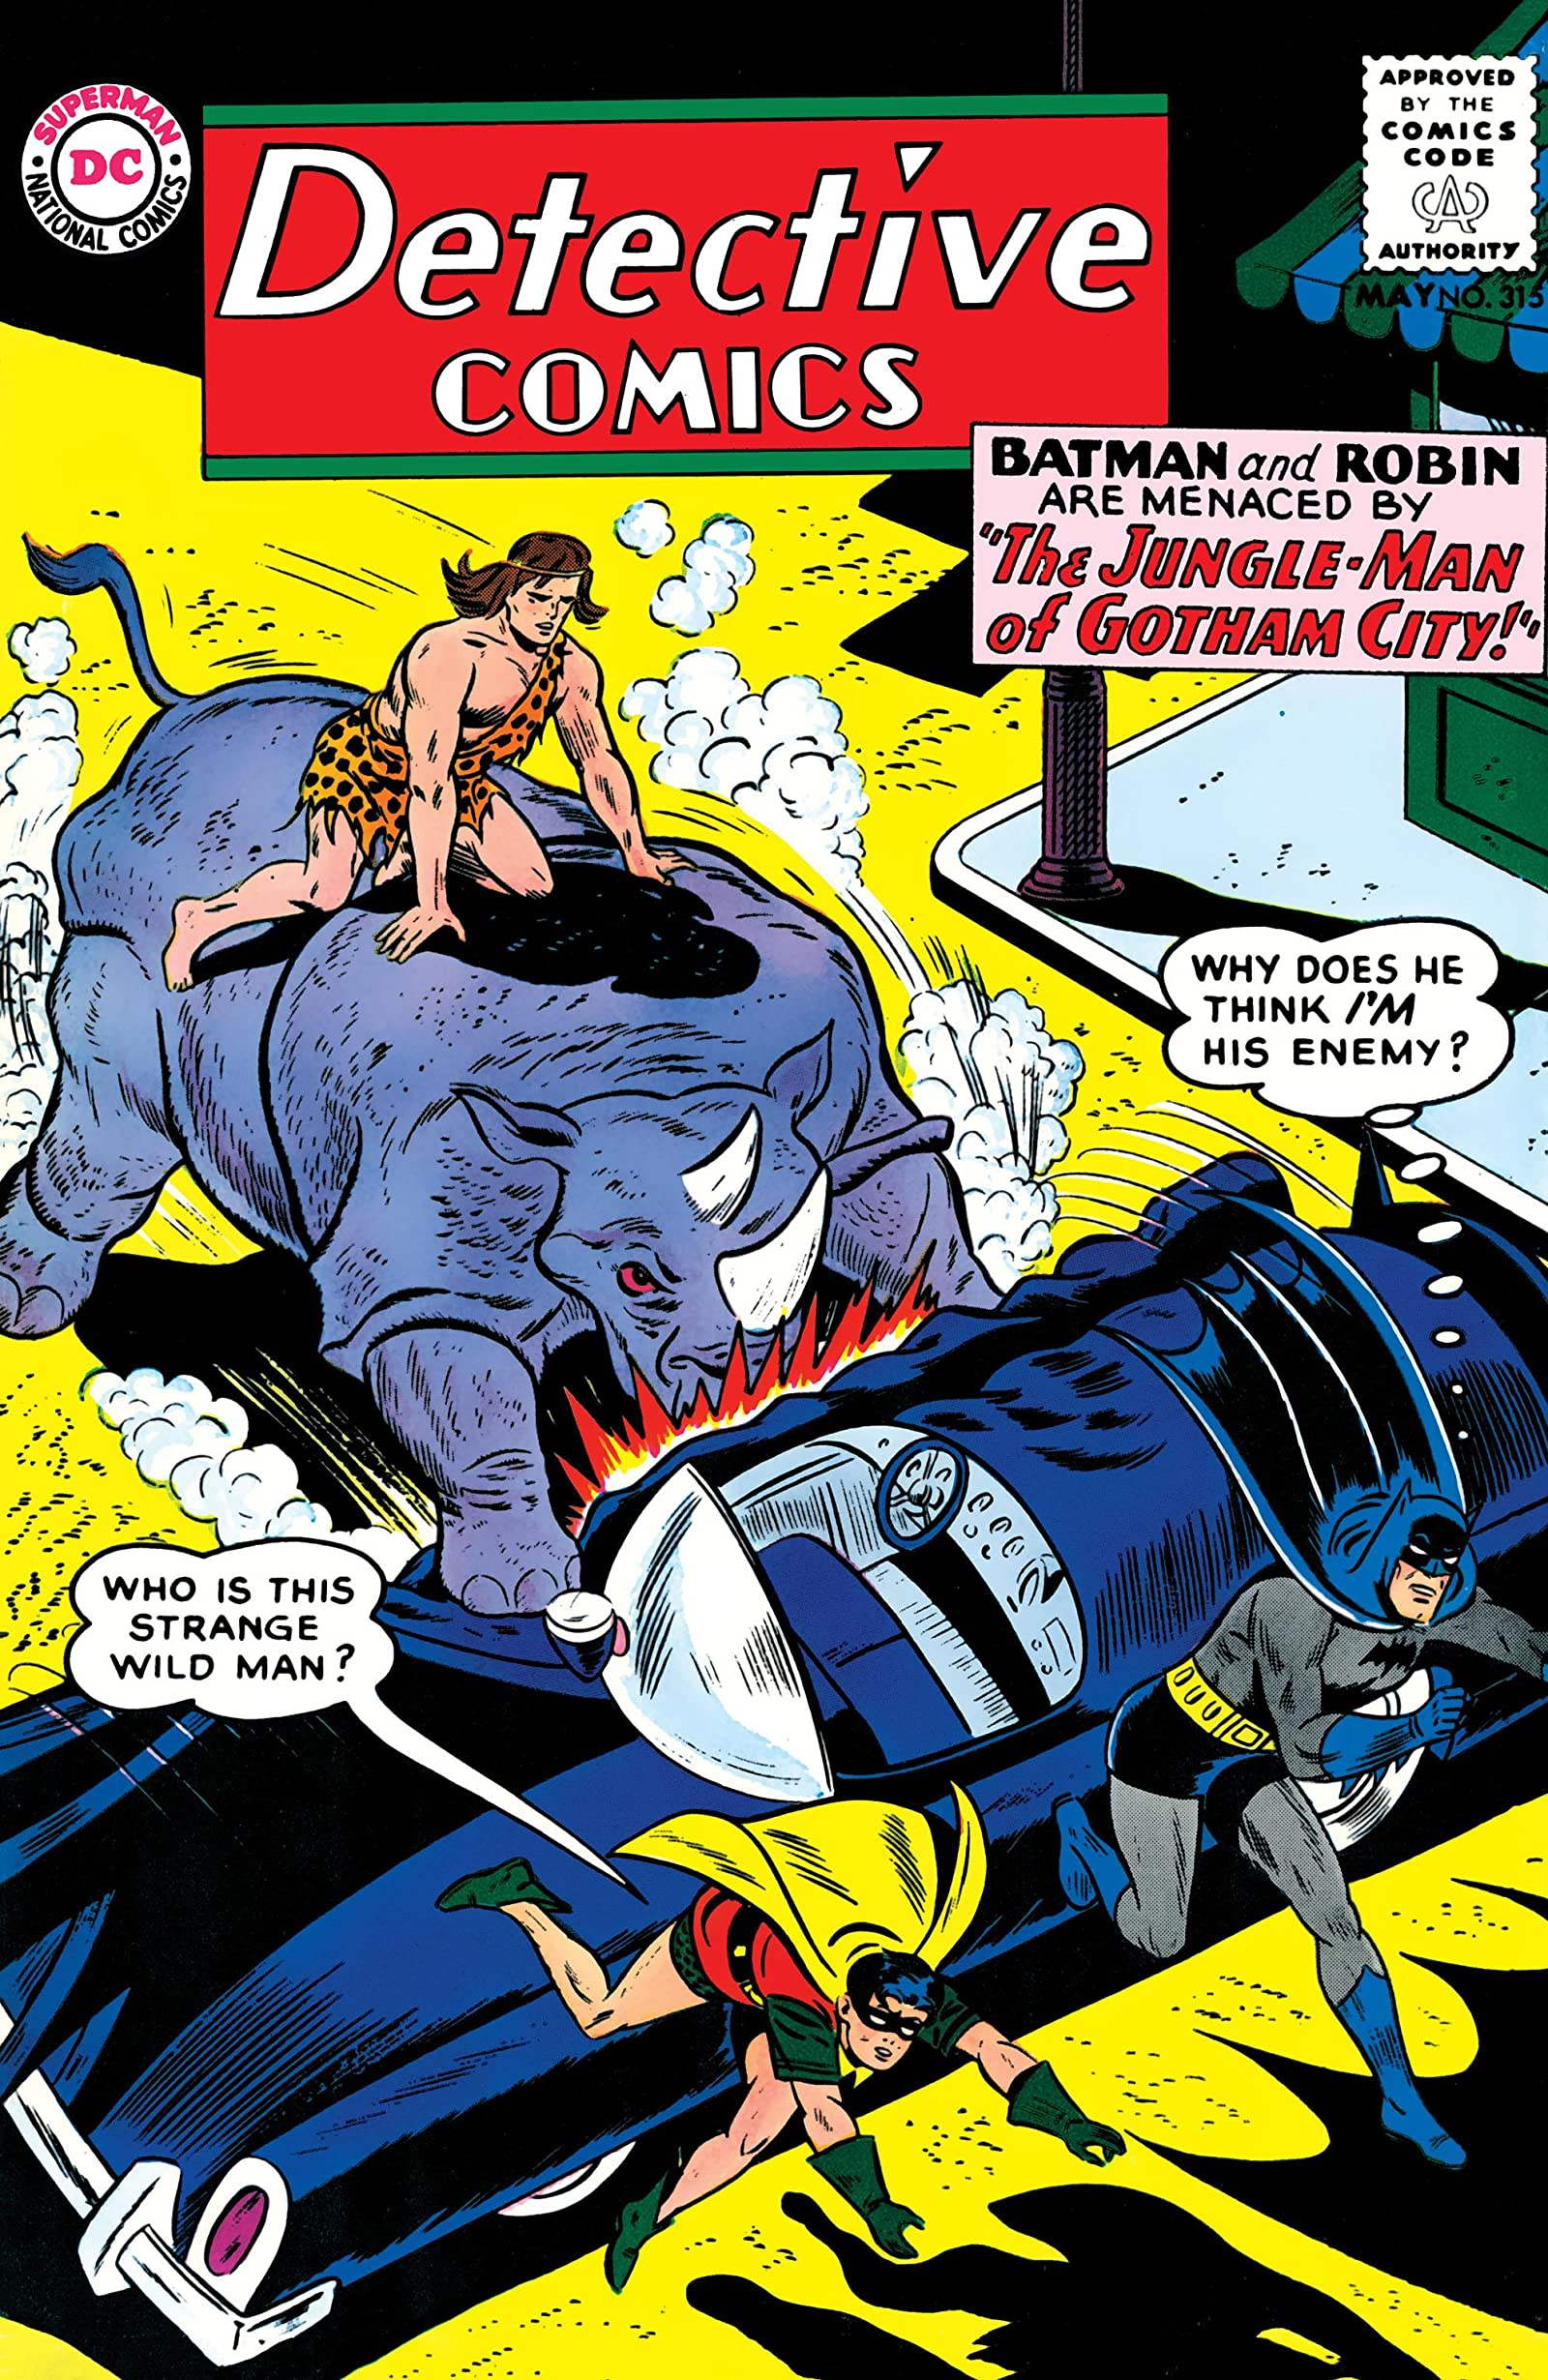 Detective Comics (1937-2011) #315 - Comics by comiXology